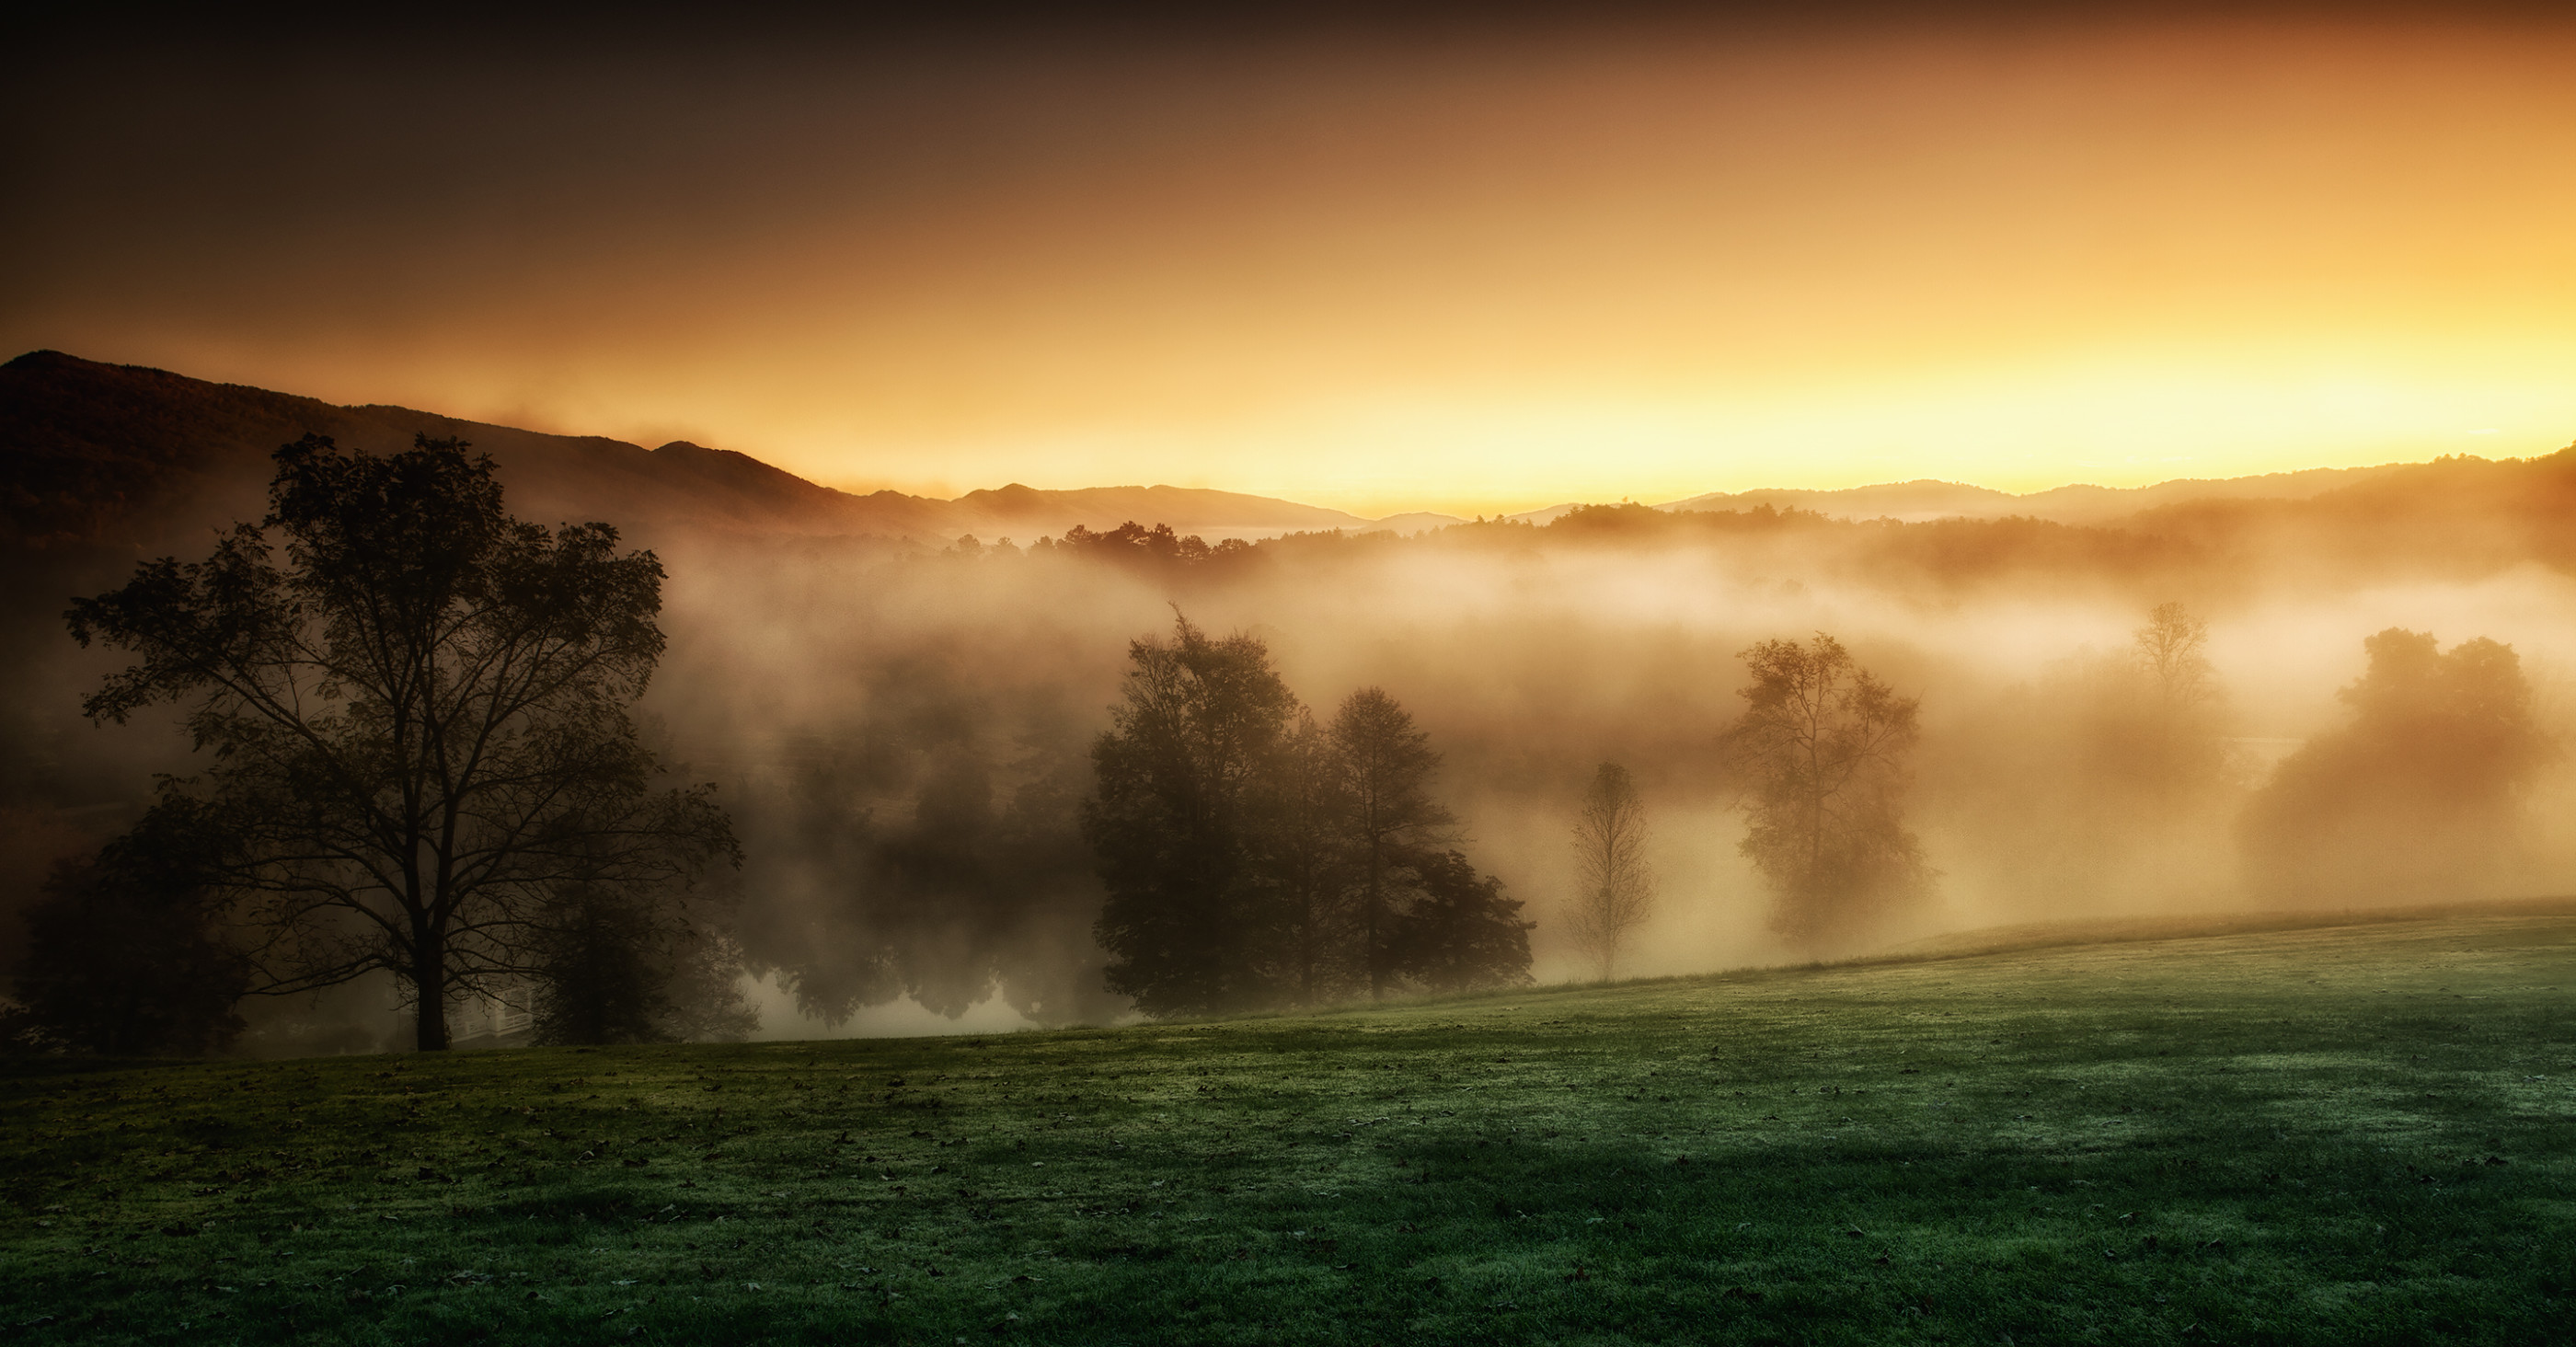 Autumn Sunrise on the Tennessee Smoky Mountains at Blackberry Farm